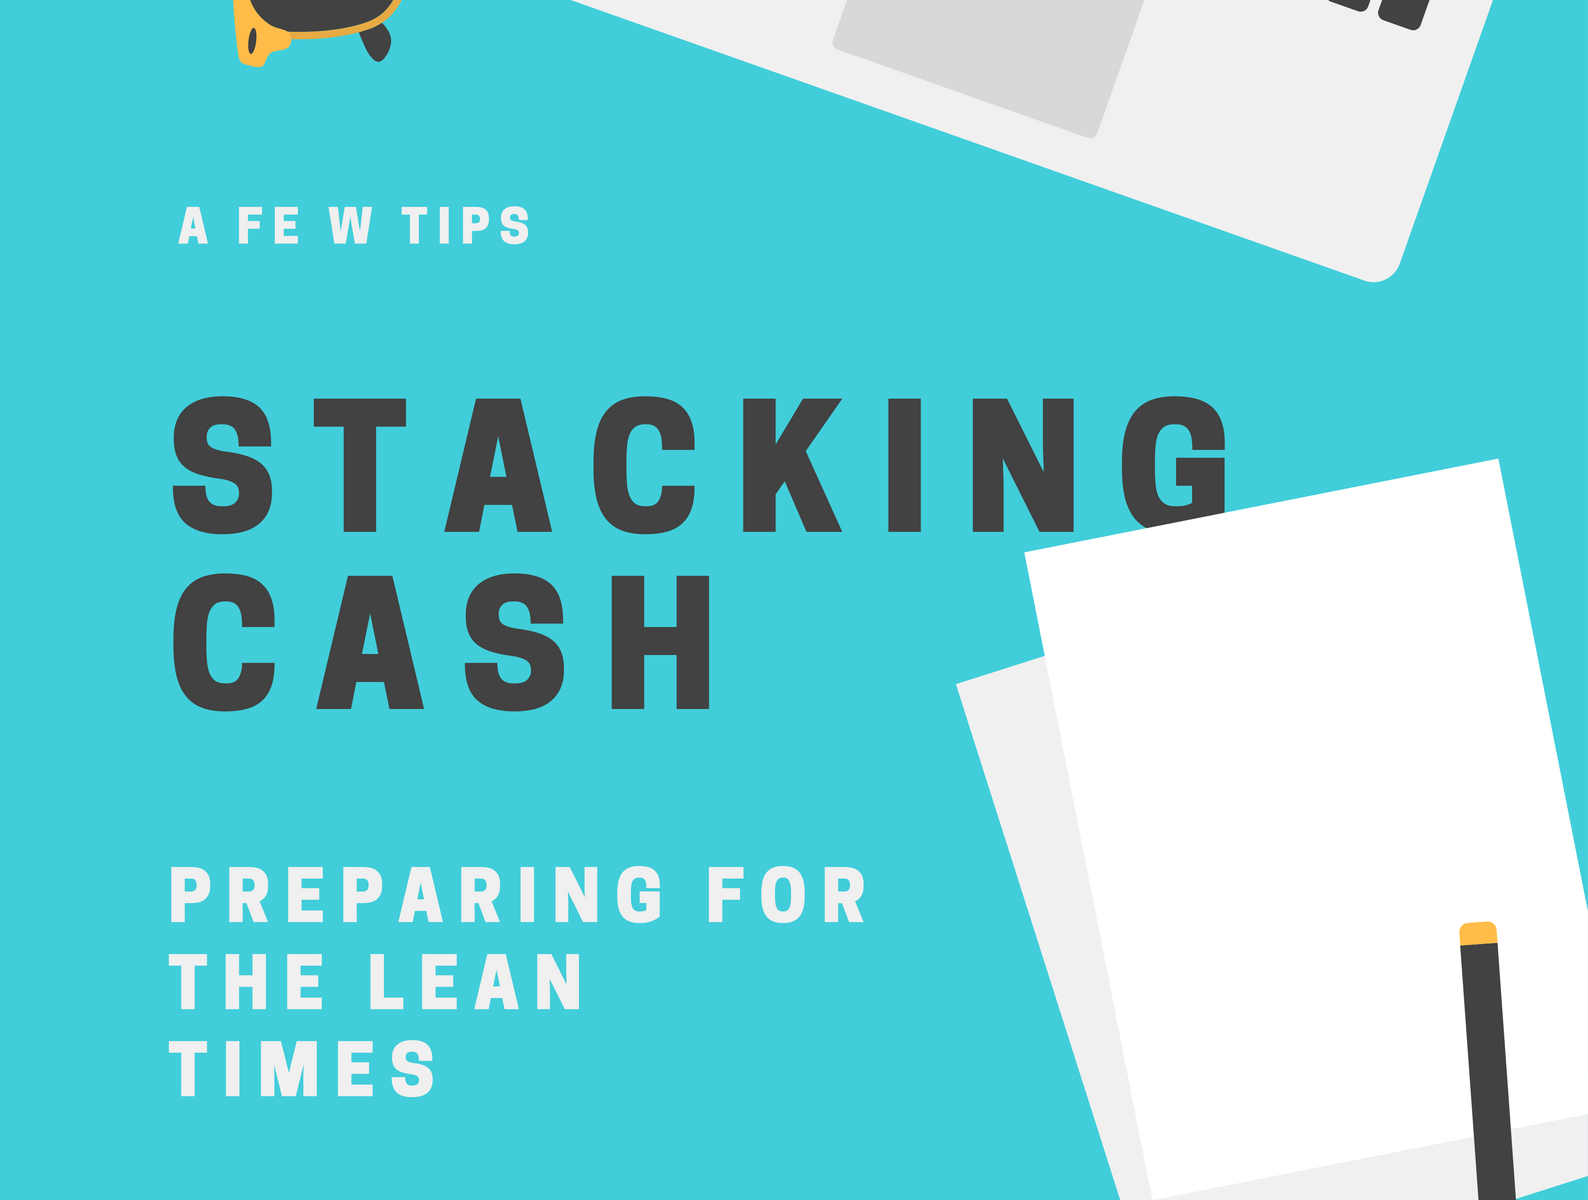 Stacking Cash Preparing for the Lean Times